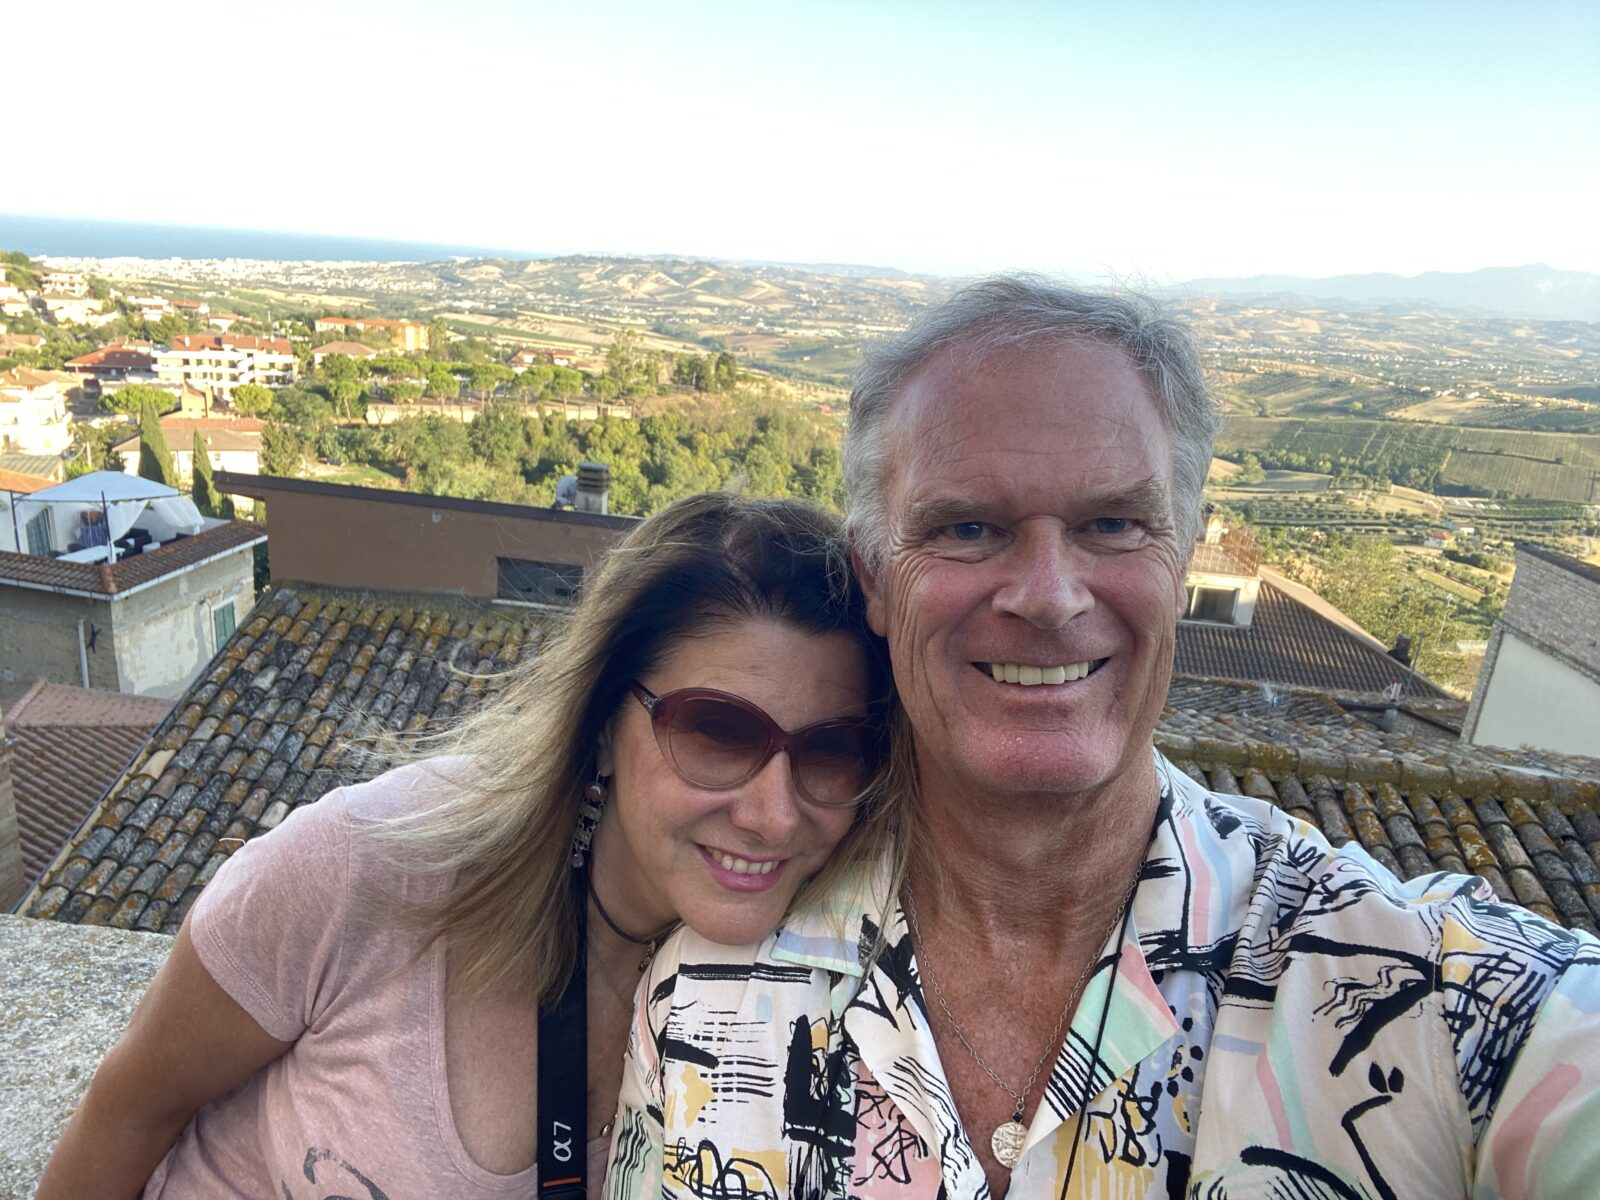 Marina and I overlooking Abruzzo and Le Marche and the Adriatic from Colonnella.